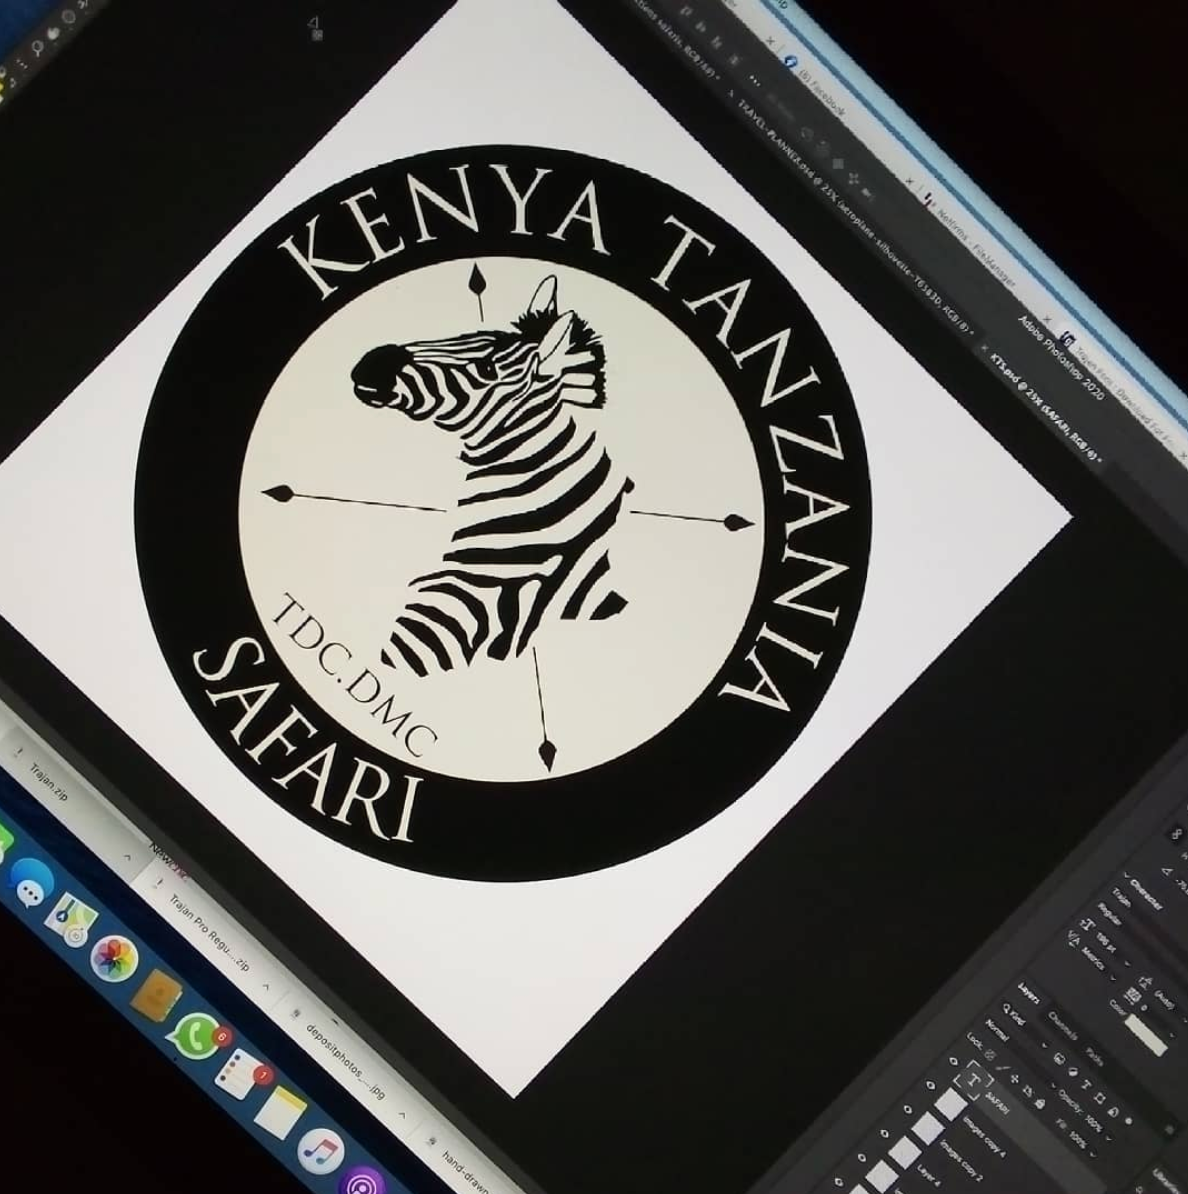 Logo Design East Africa